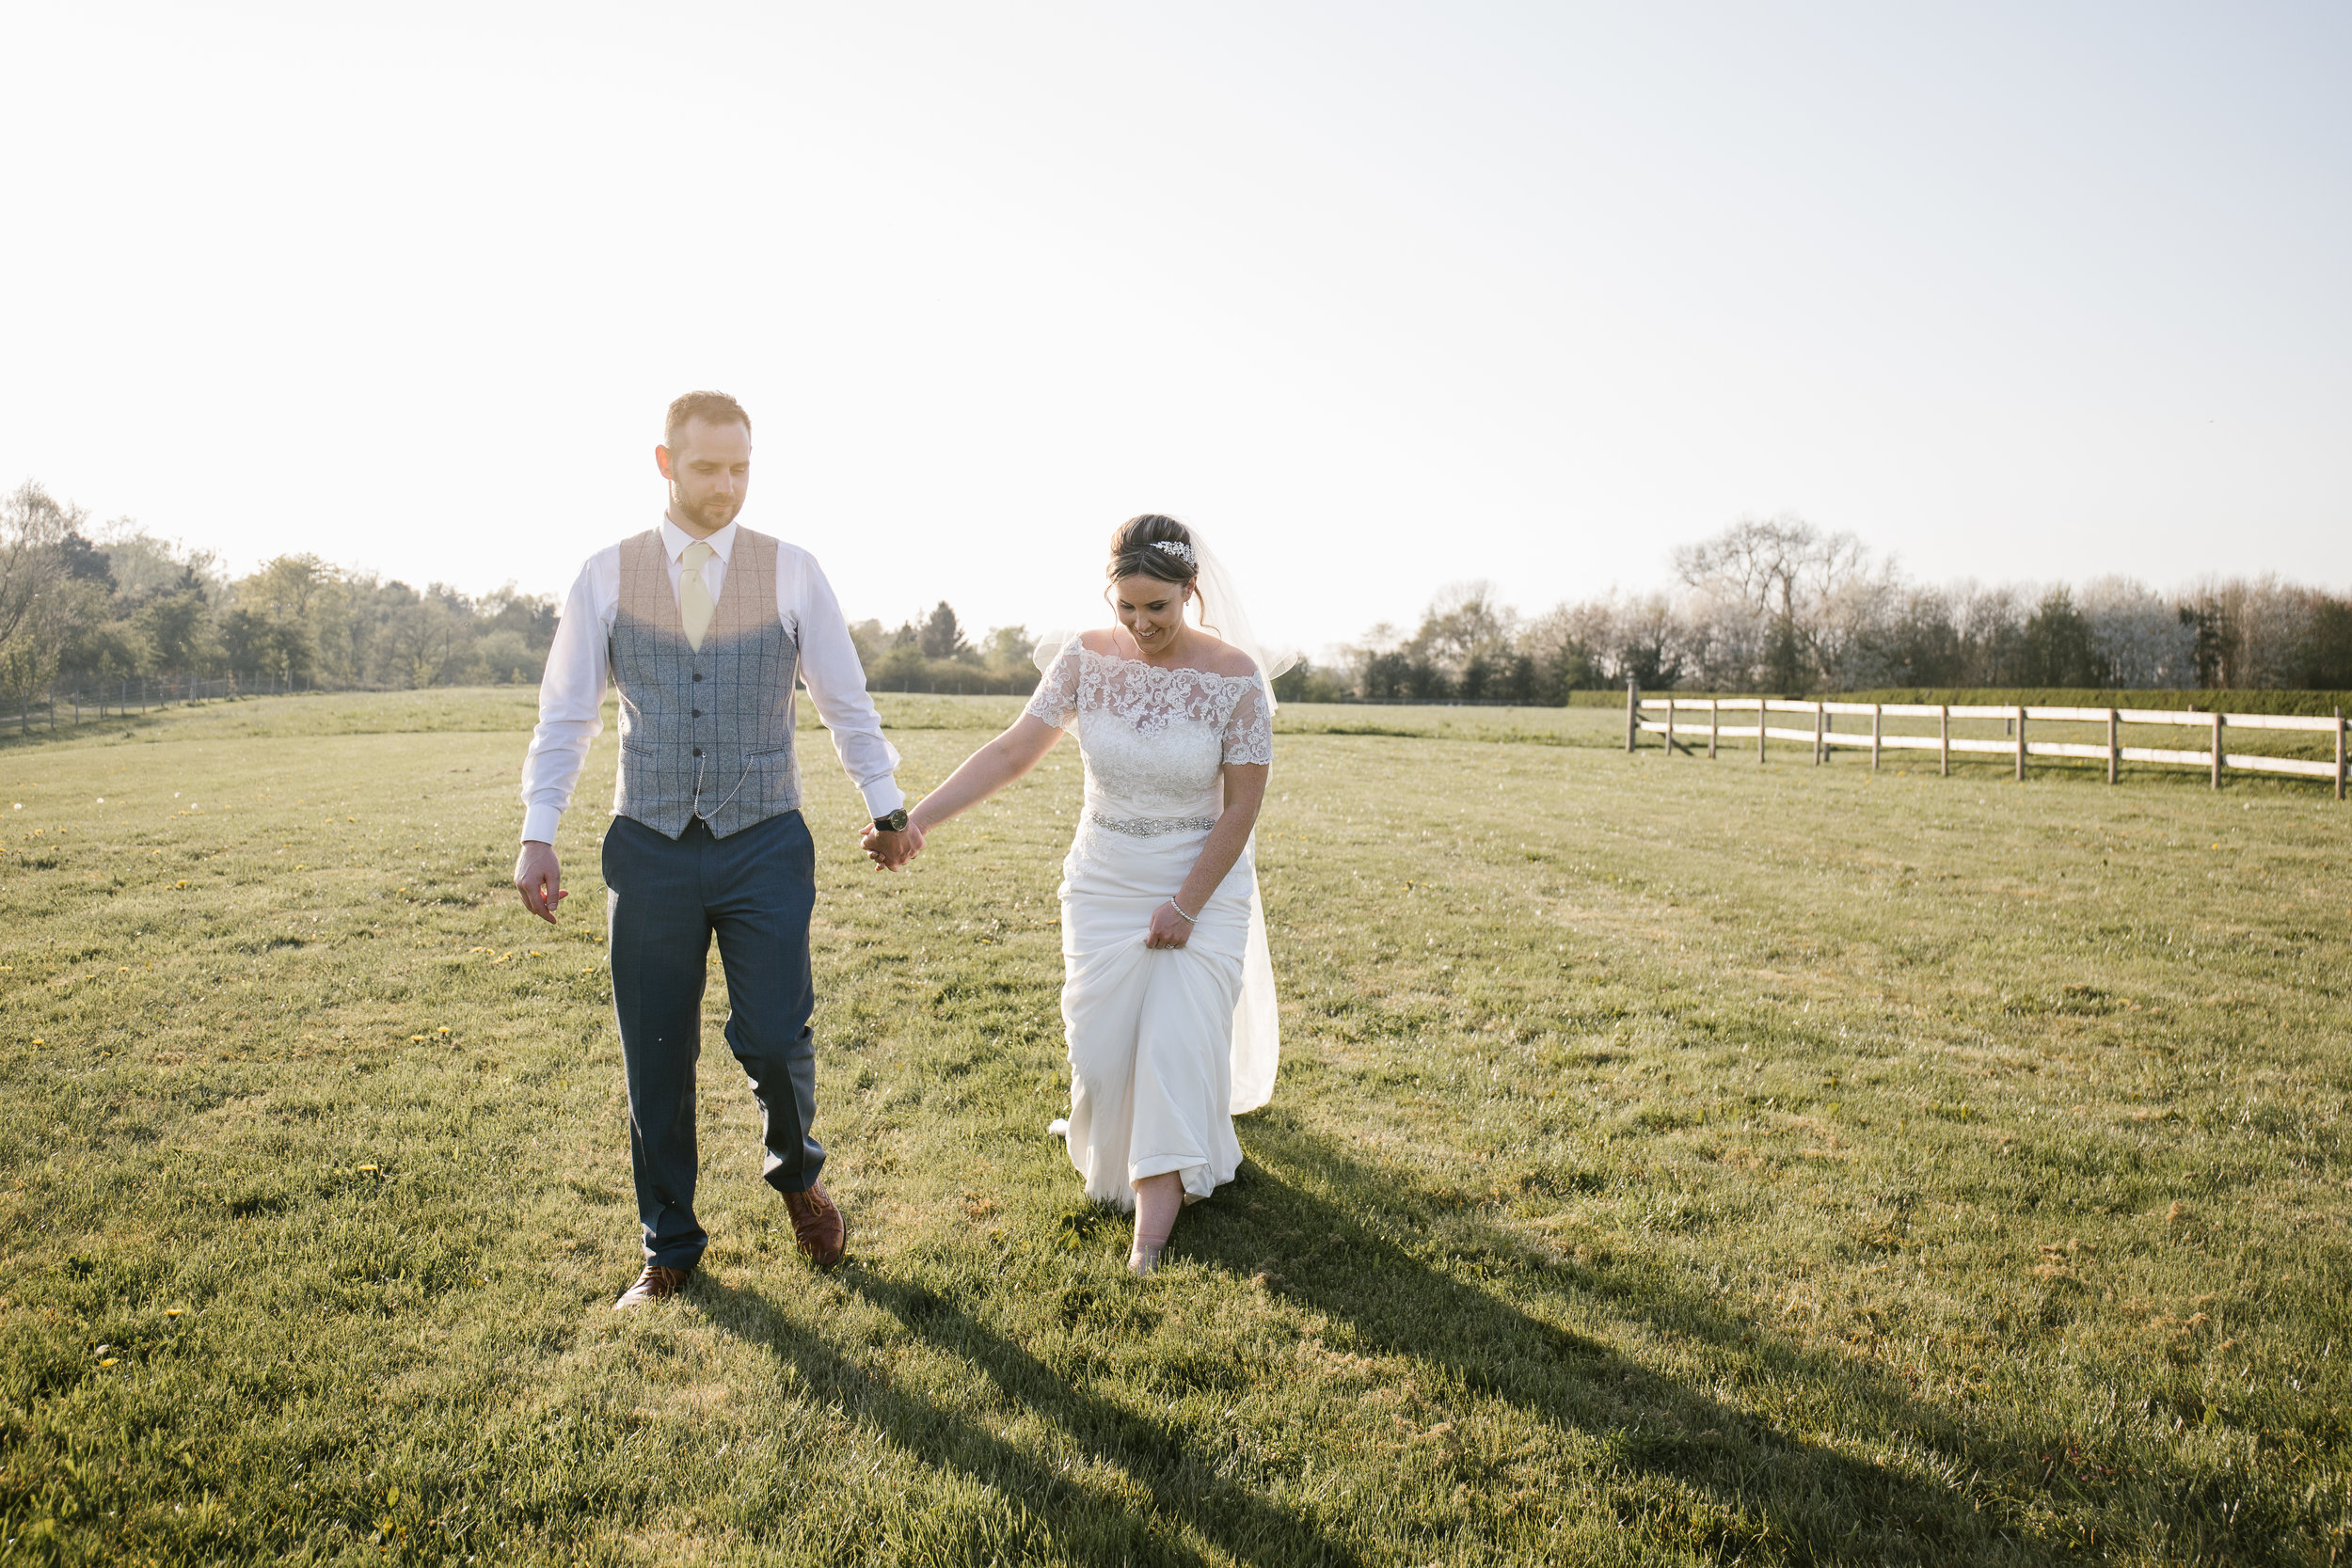 bride and groom walking hand in hand through a field